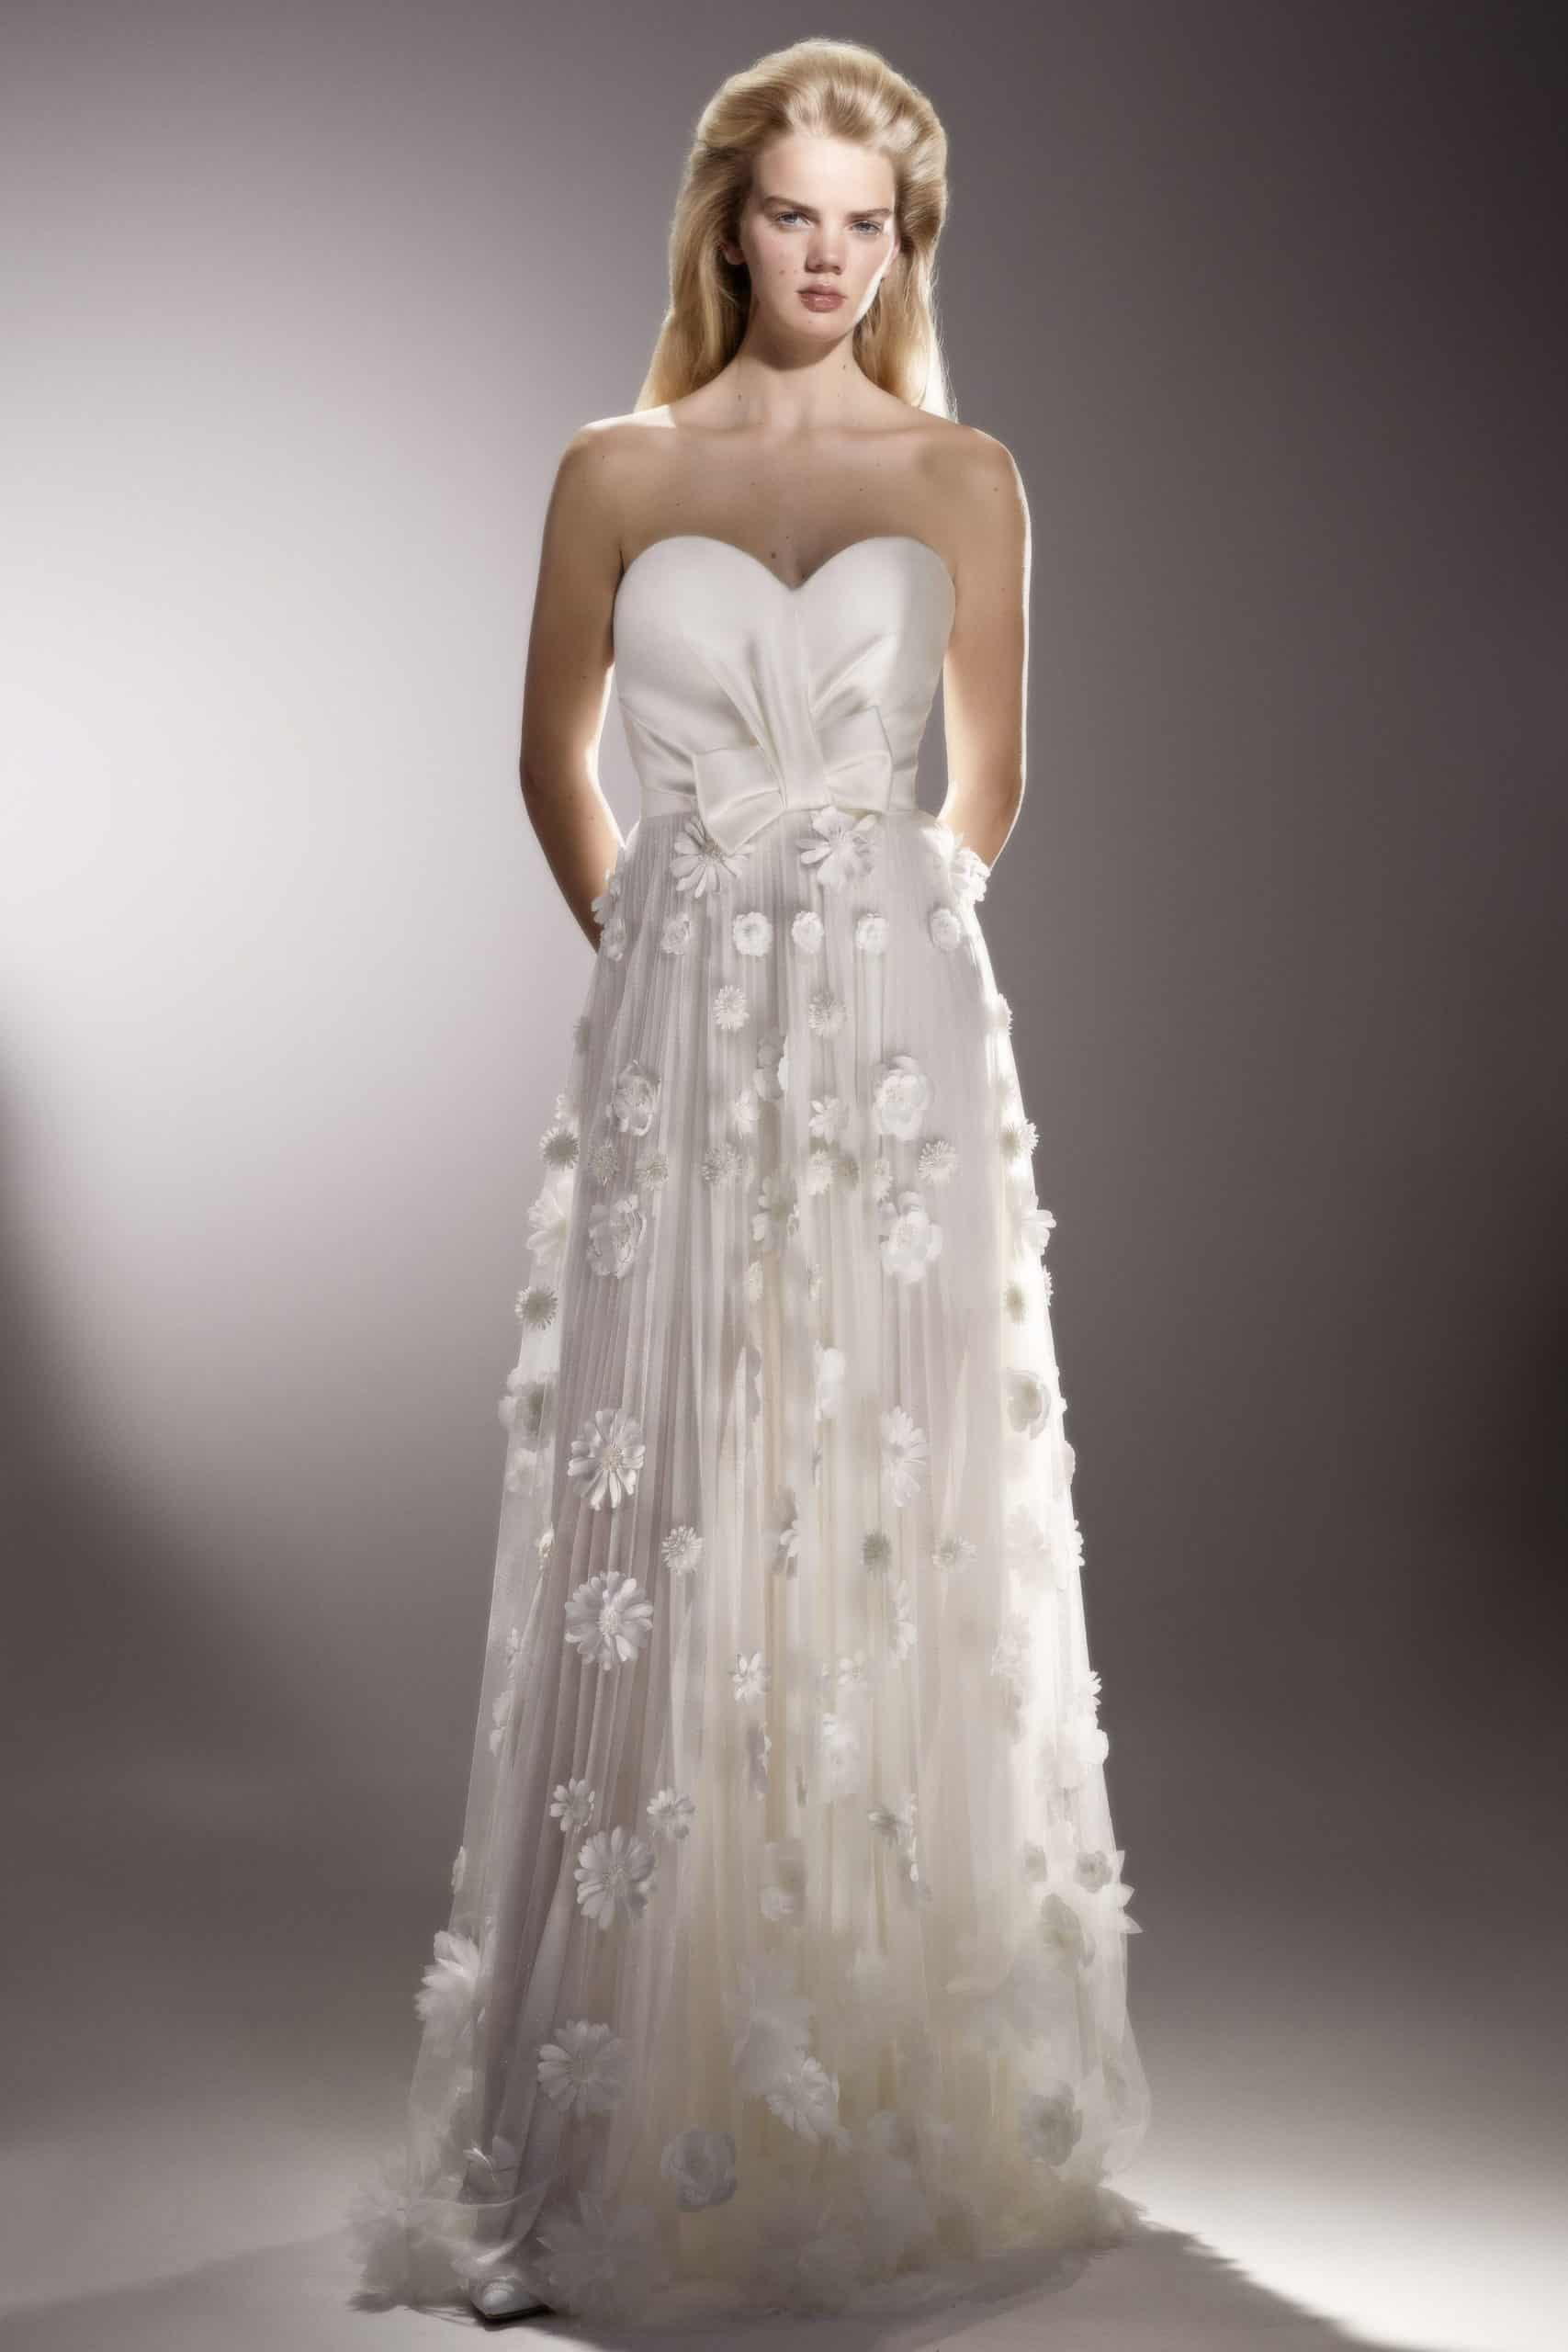 strapless wedding dress with embossed flowers by Viktor and Rolf